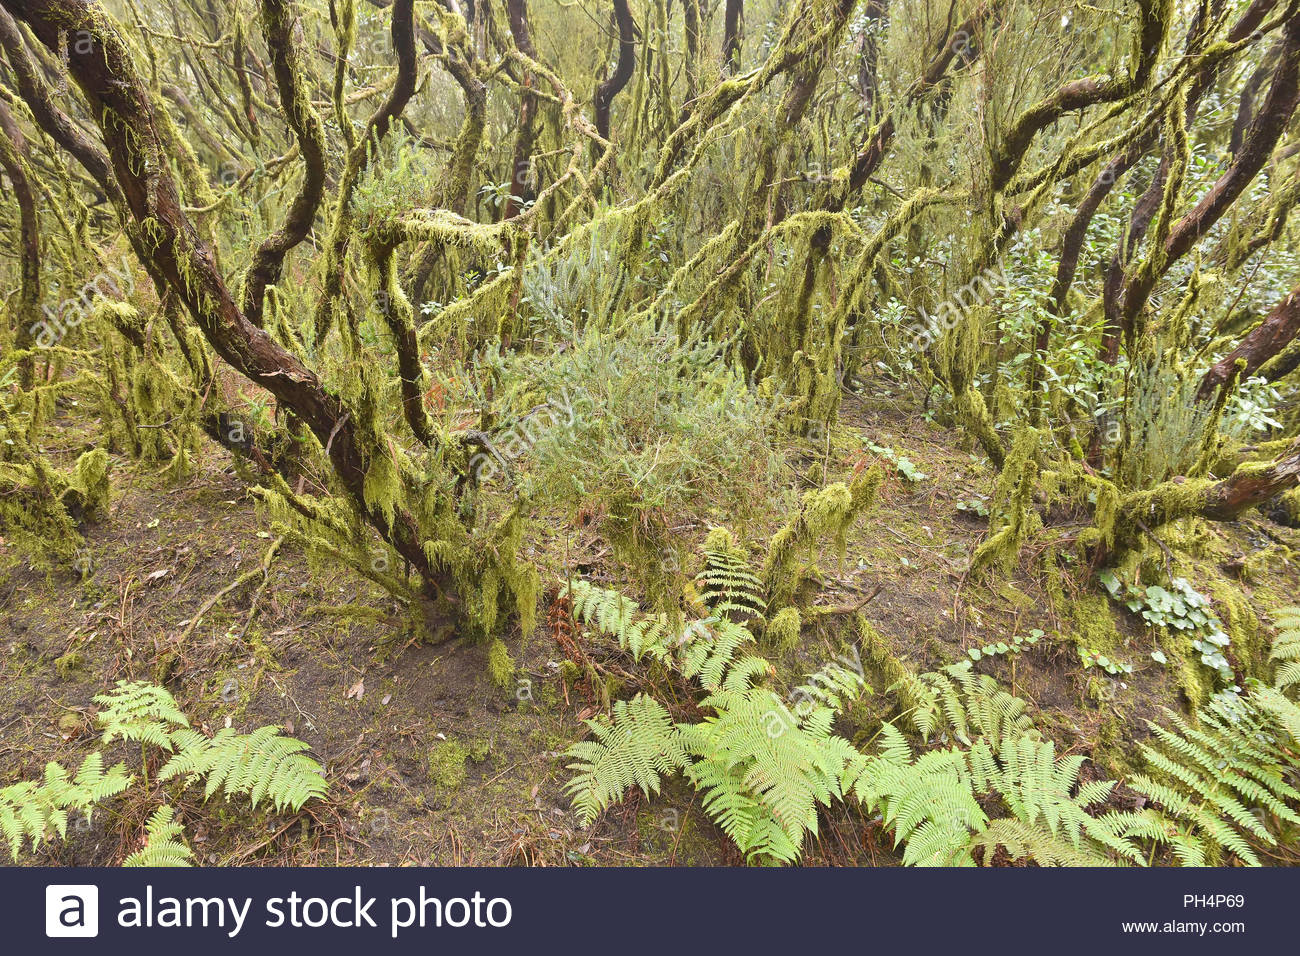 Moss and lichen covered trees. Evergreen laurel forest, Anaga Rural Park in the northeast of Tenerife Canary Islands Spain. Stock Photo